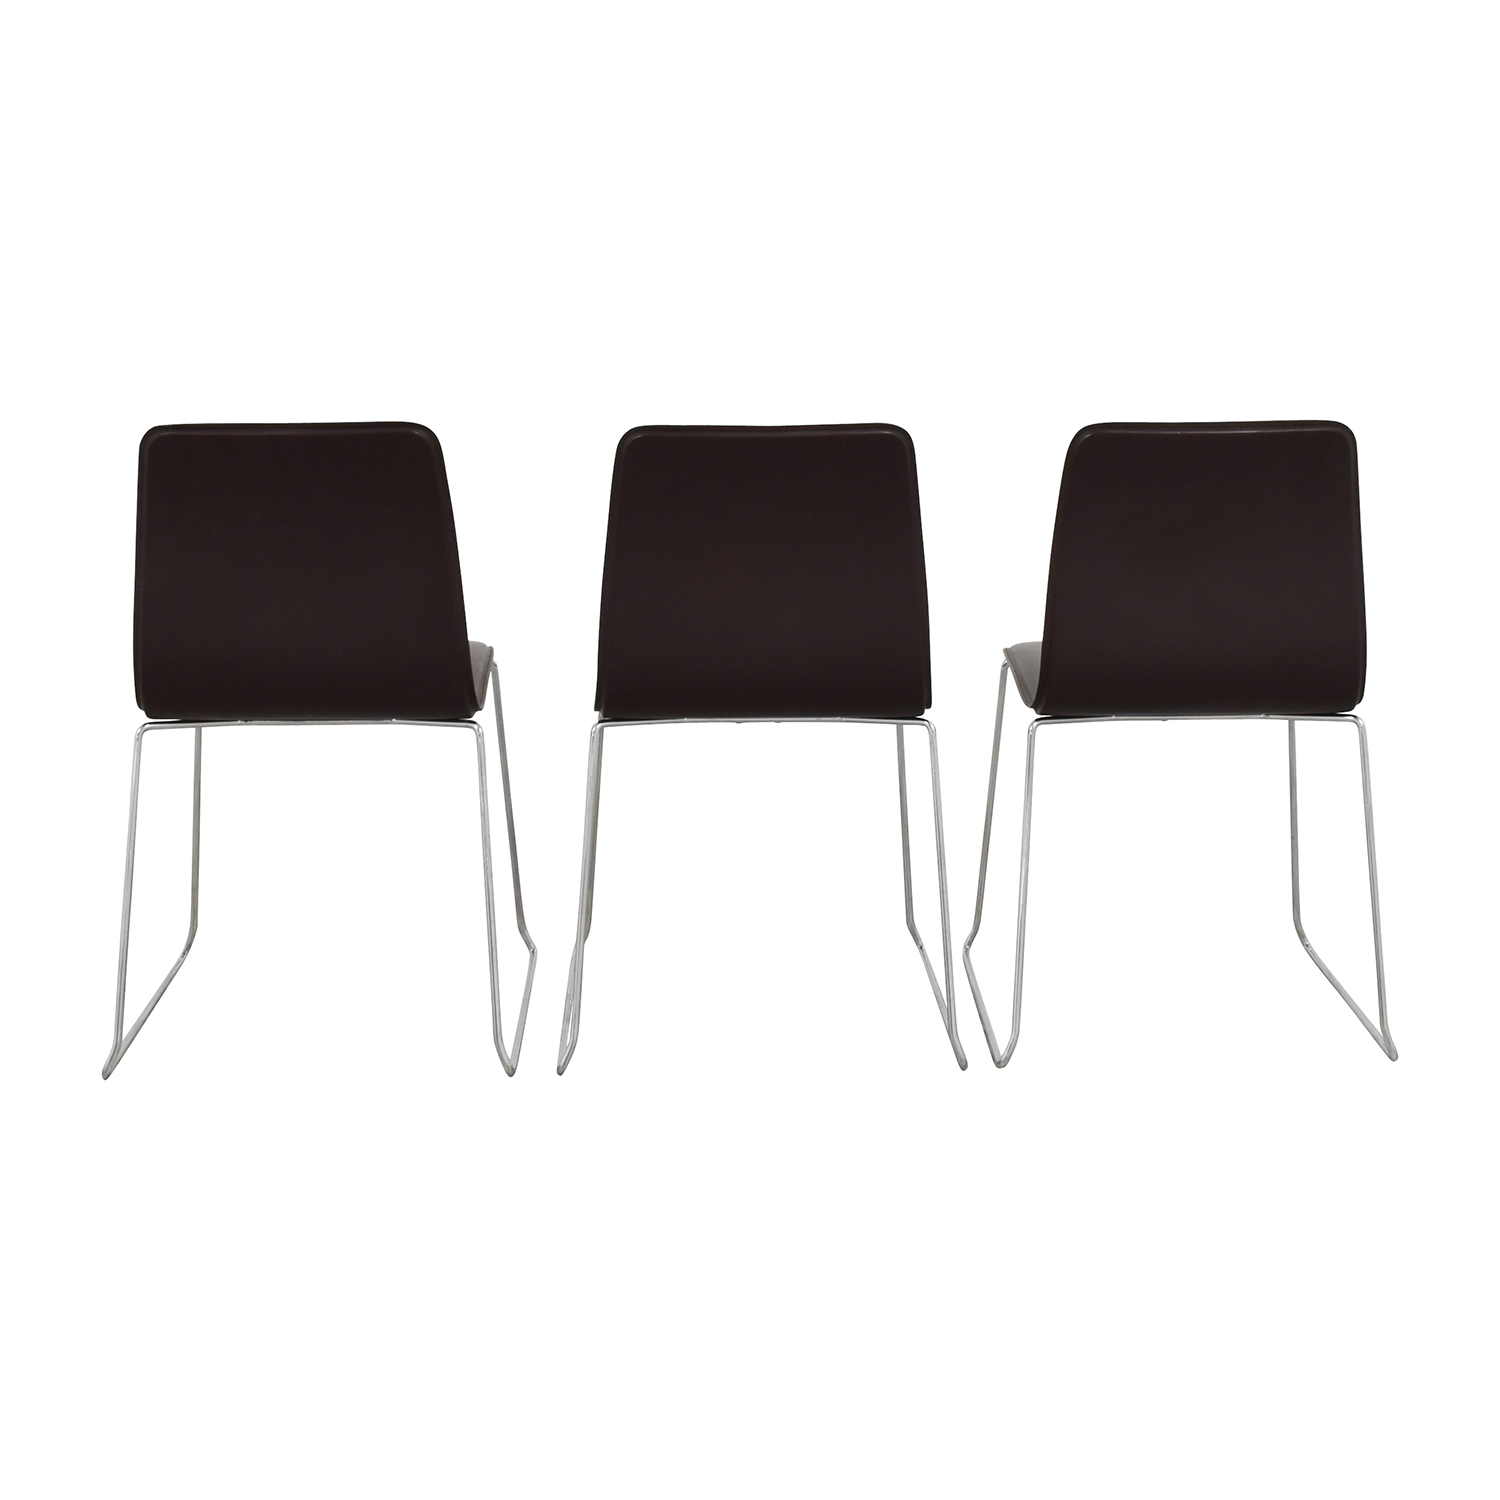 ABC Home & Carpet ABC Home & Carpet Leather and Chrome Chairs, Set of Three Chairs